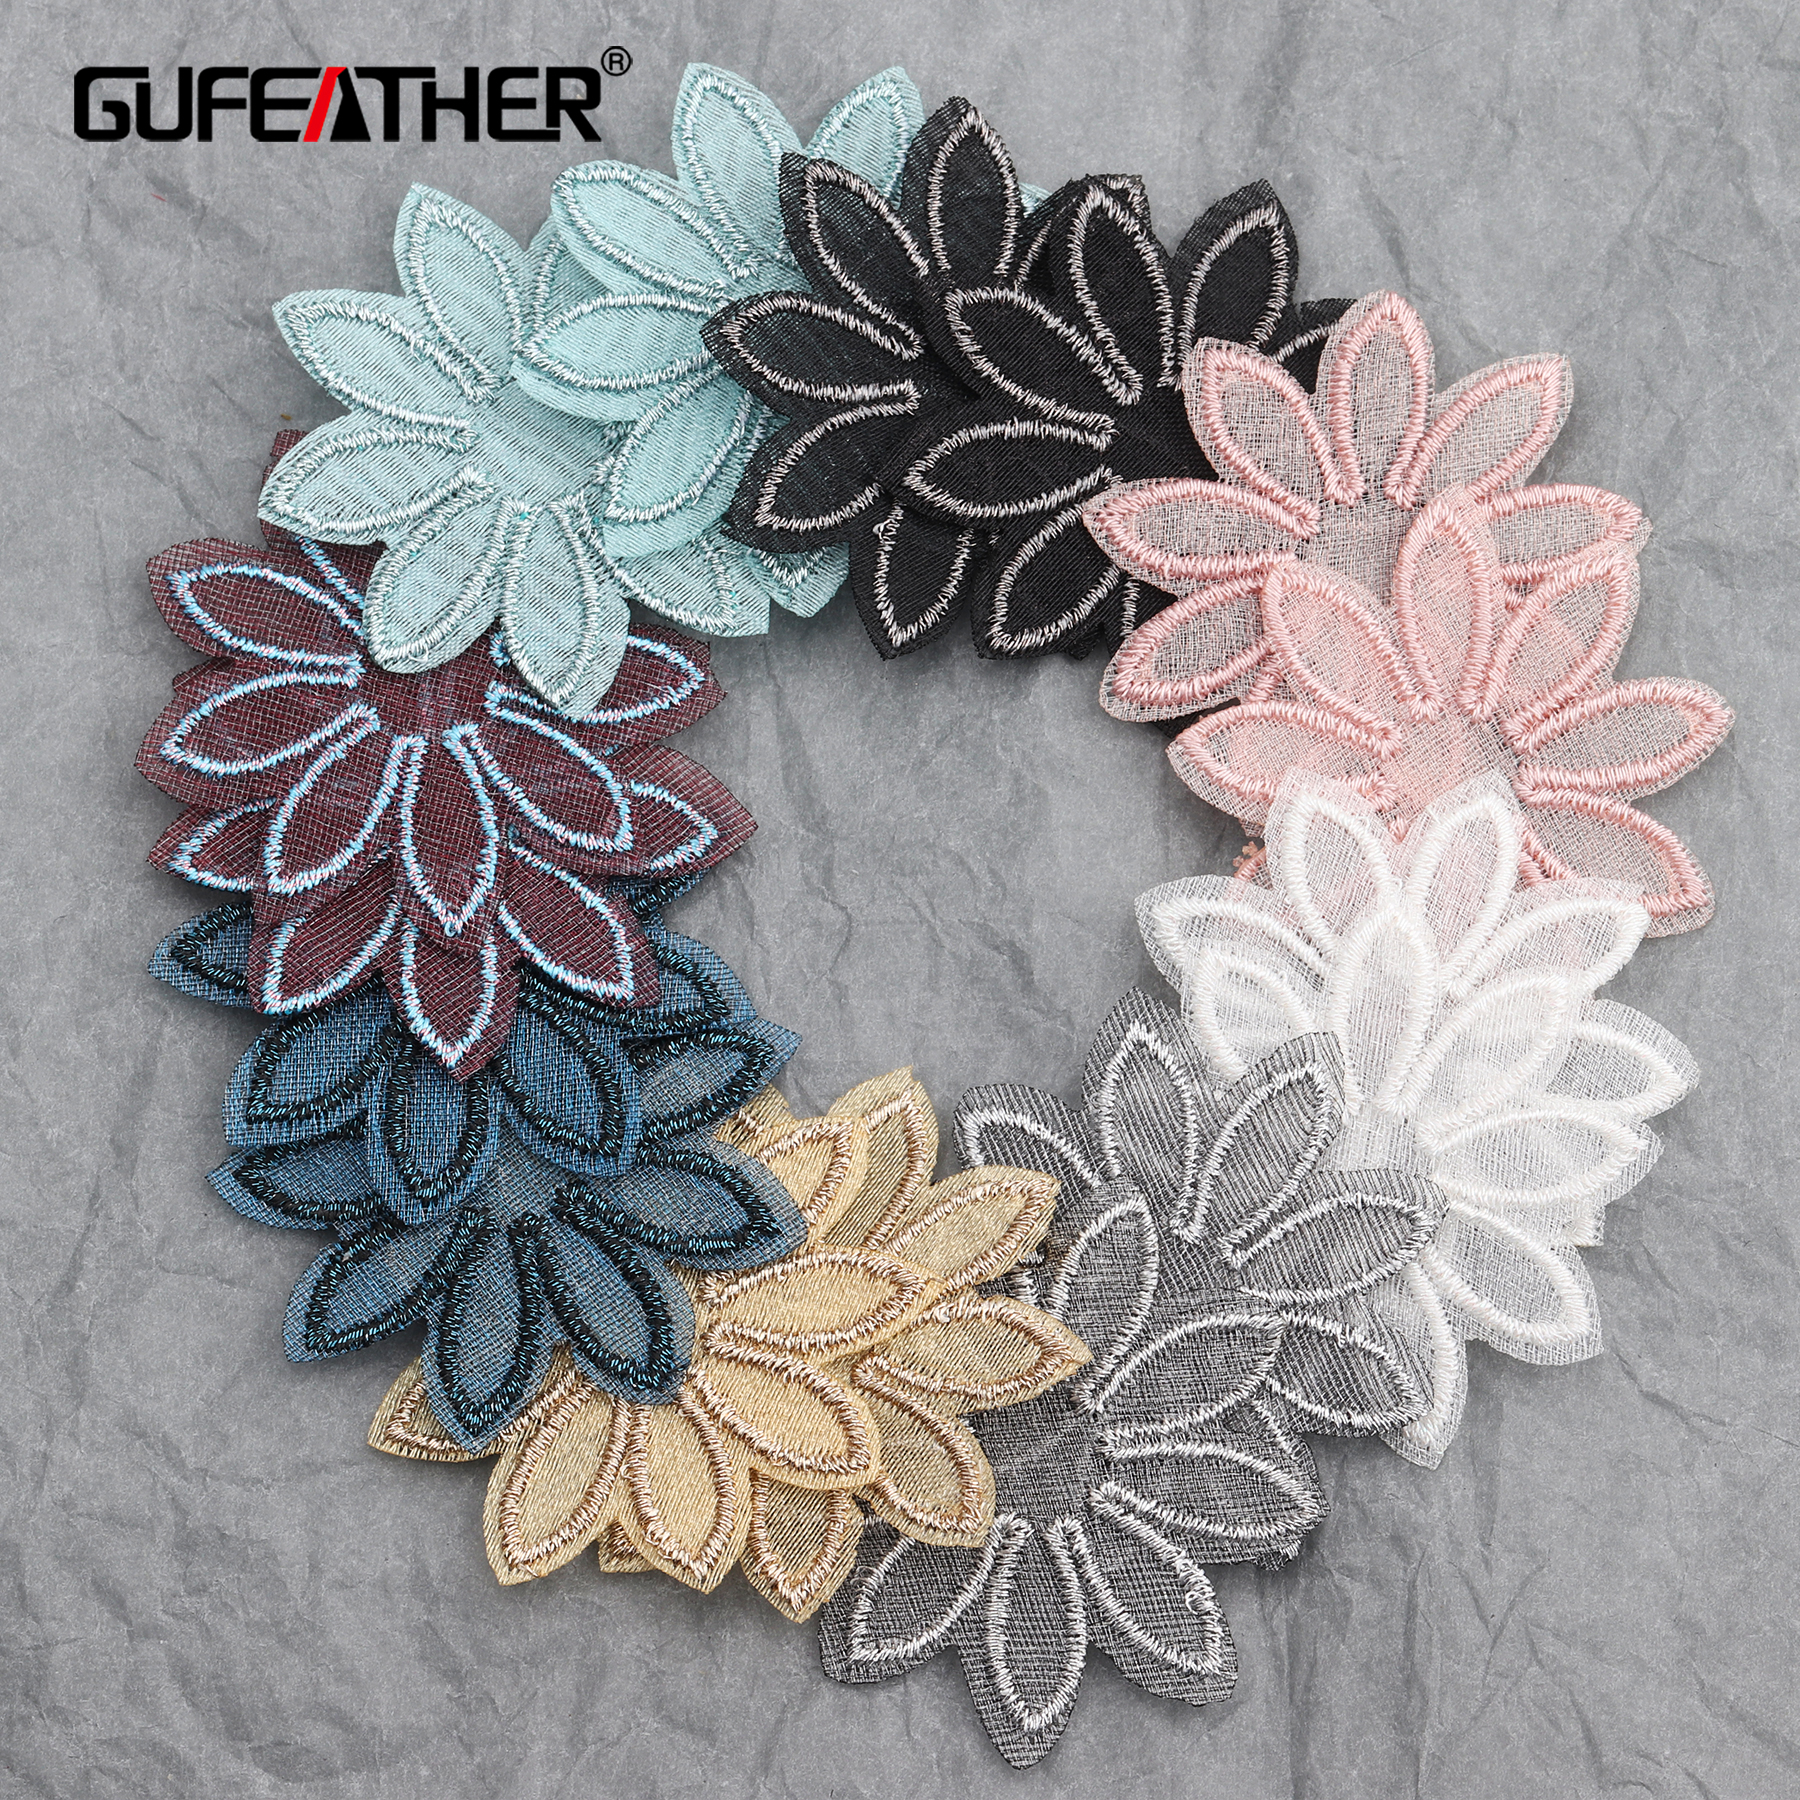 GUFEATHER L214,jewelry Accessories,flower Shape,diy Pendant,knitted Patch,jewelry Findings,hand Made,jewelry Making,20pcs/lot